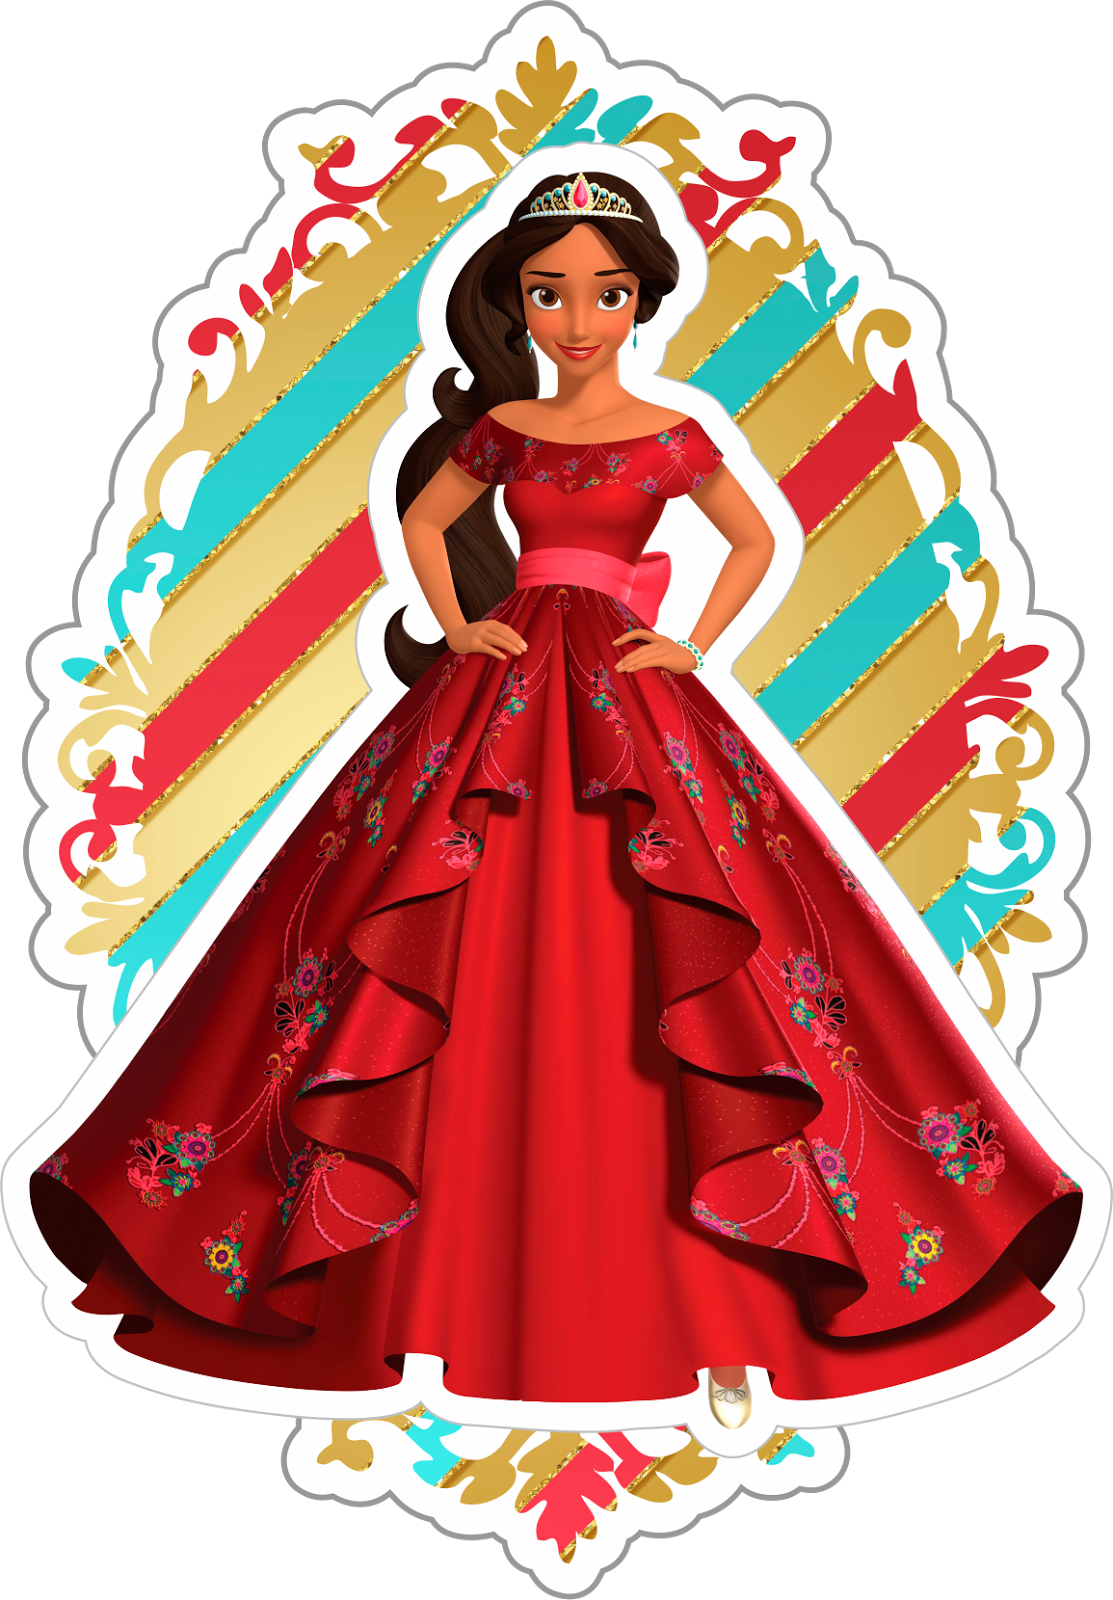 Tag d princesa de. Clipart guitar elena avalor